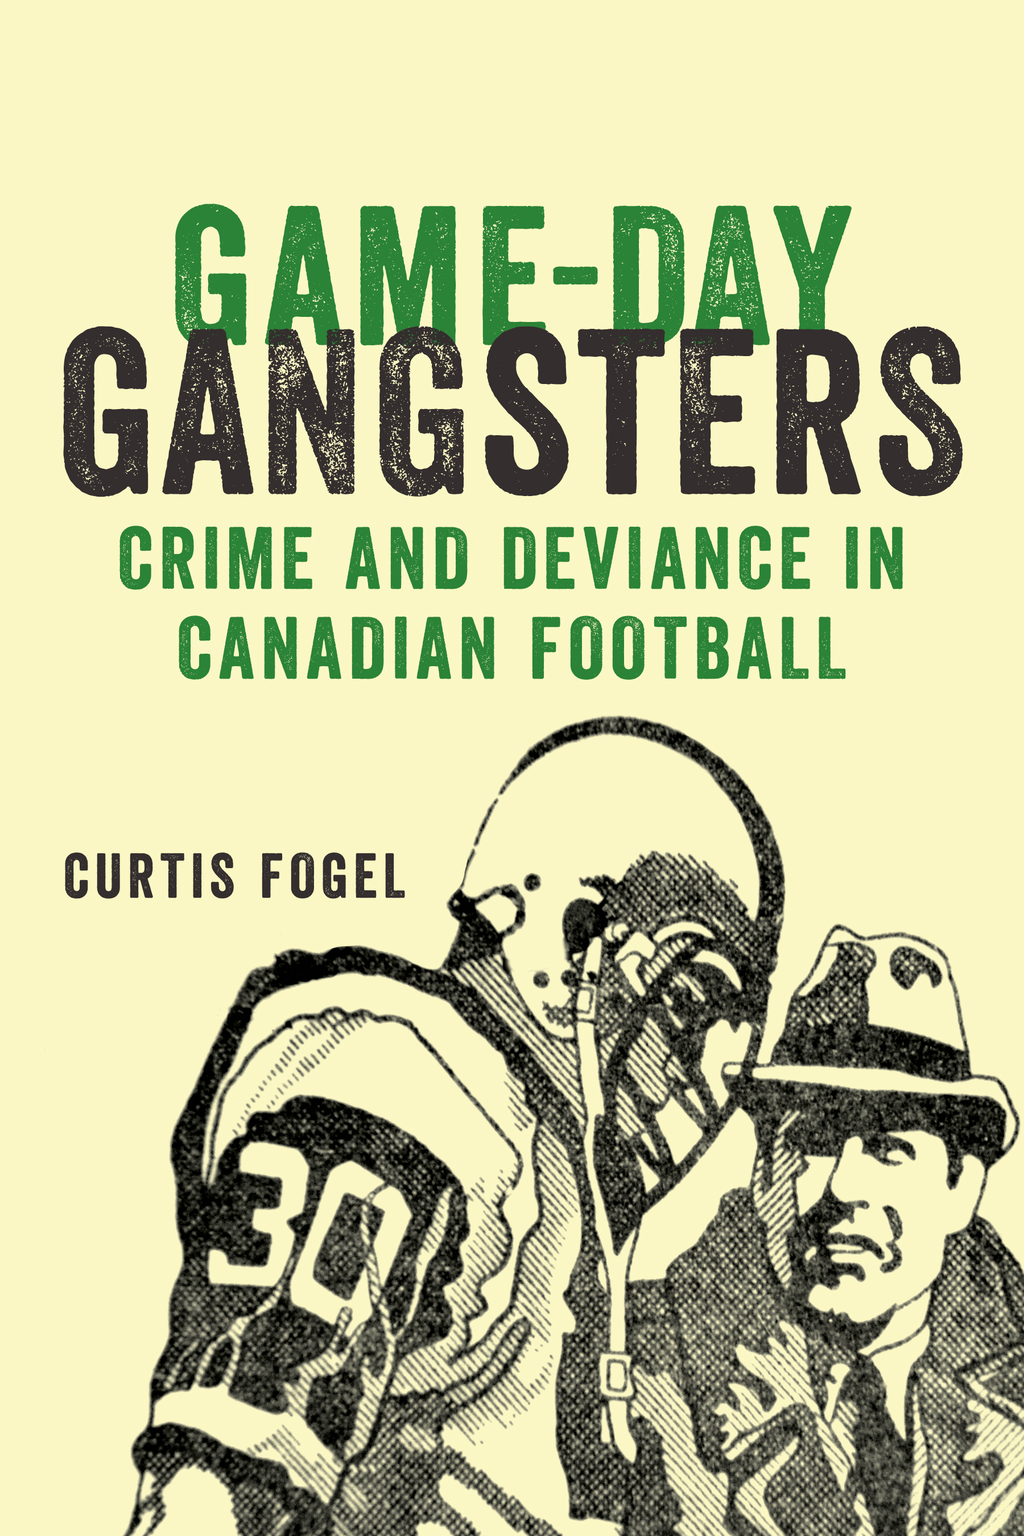 Game-Day Gangsters Crime and Deviance in Canadian Football